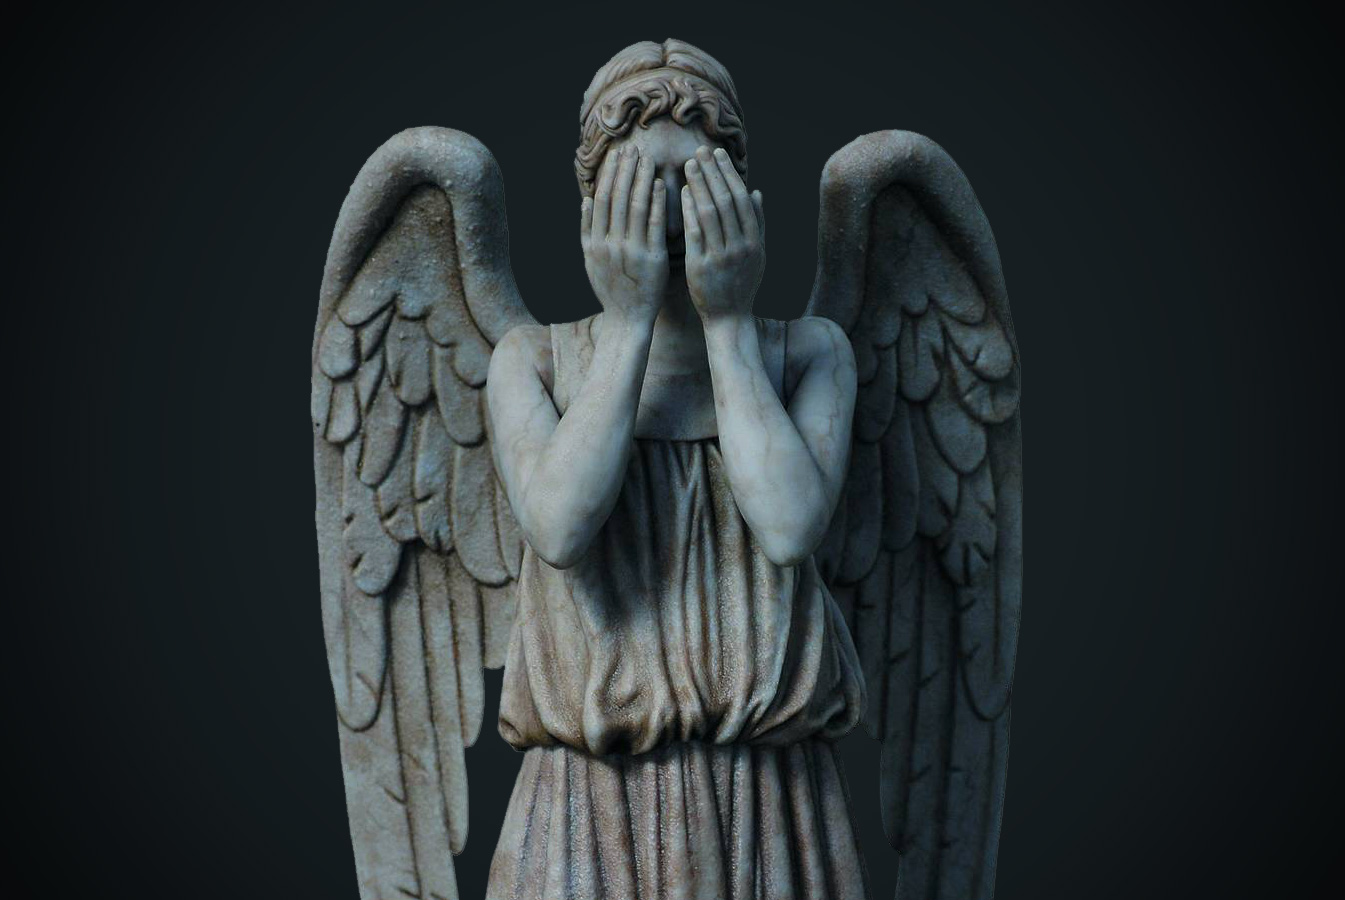 Free Download Studios Doctor Who Weeping Angel 16 Scale Figurine